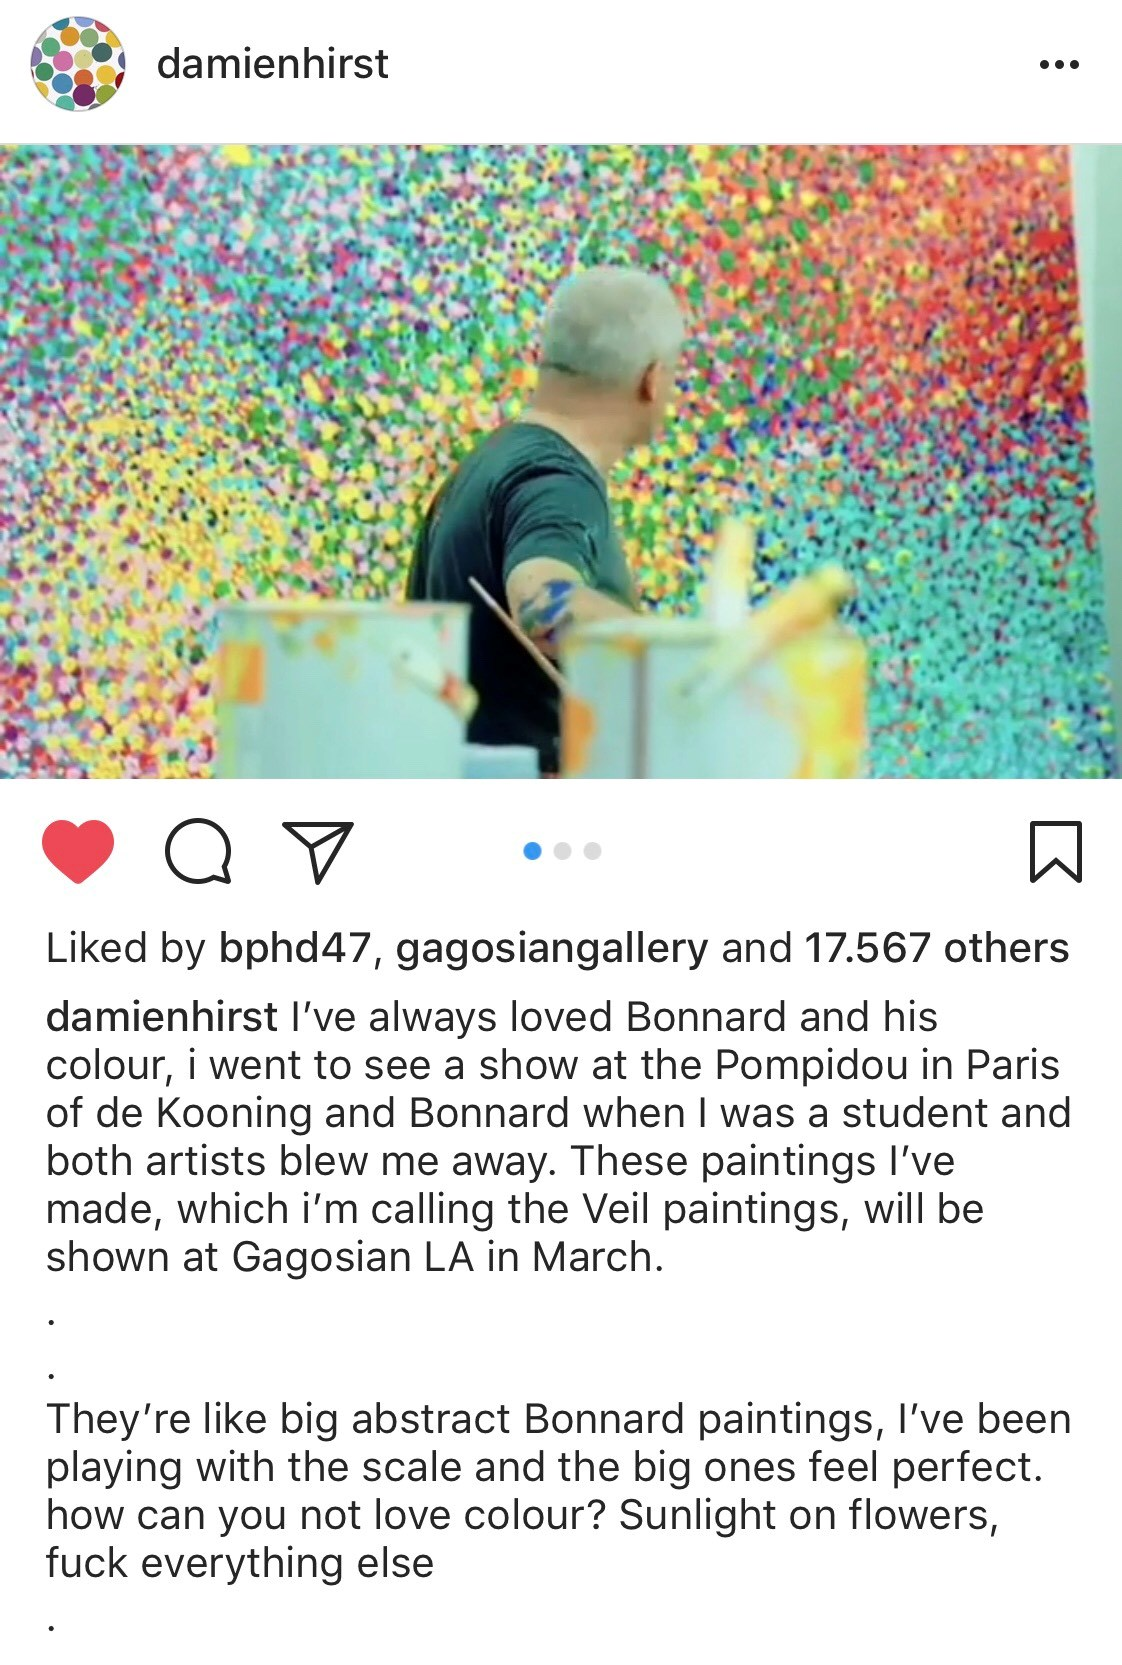 Damien Hirst Opening Up on Instagram